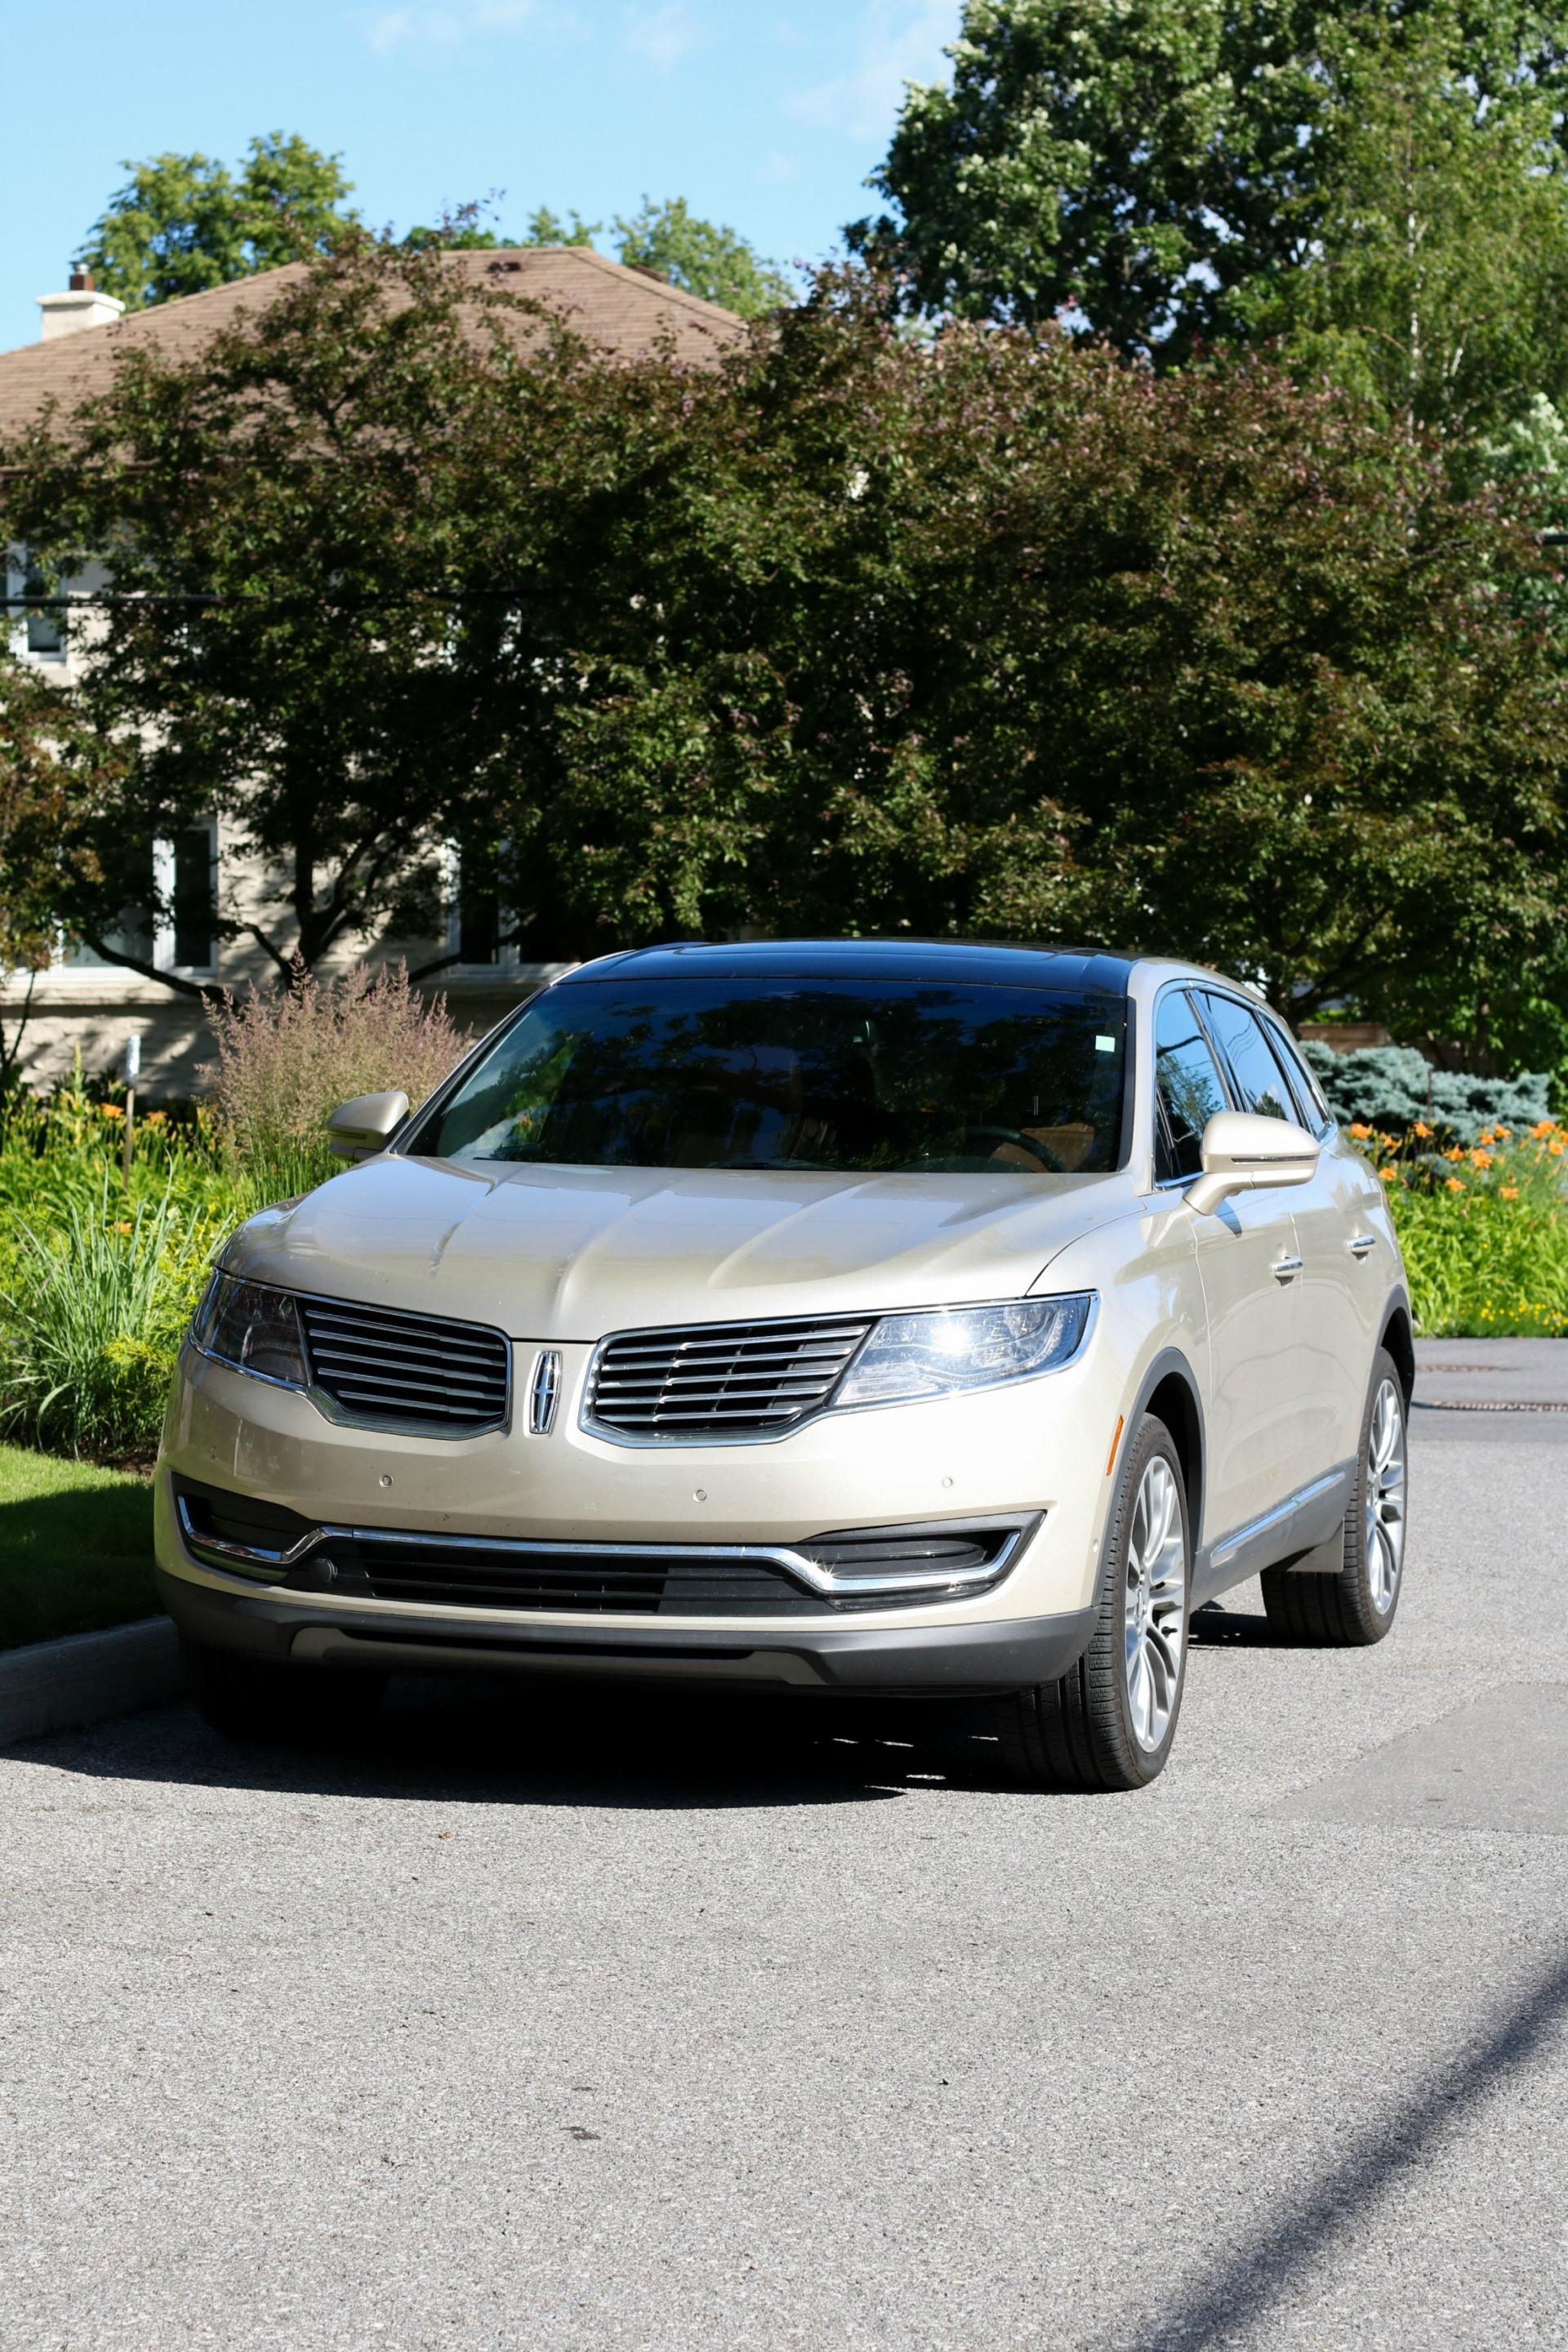 The Lincoln MKX is one smooth ride!! Read on for my full review!